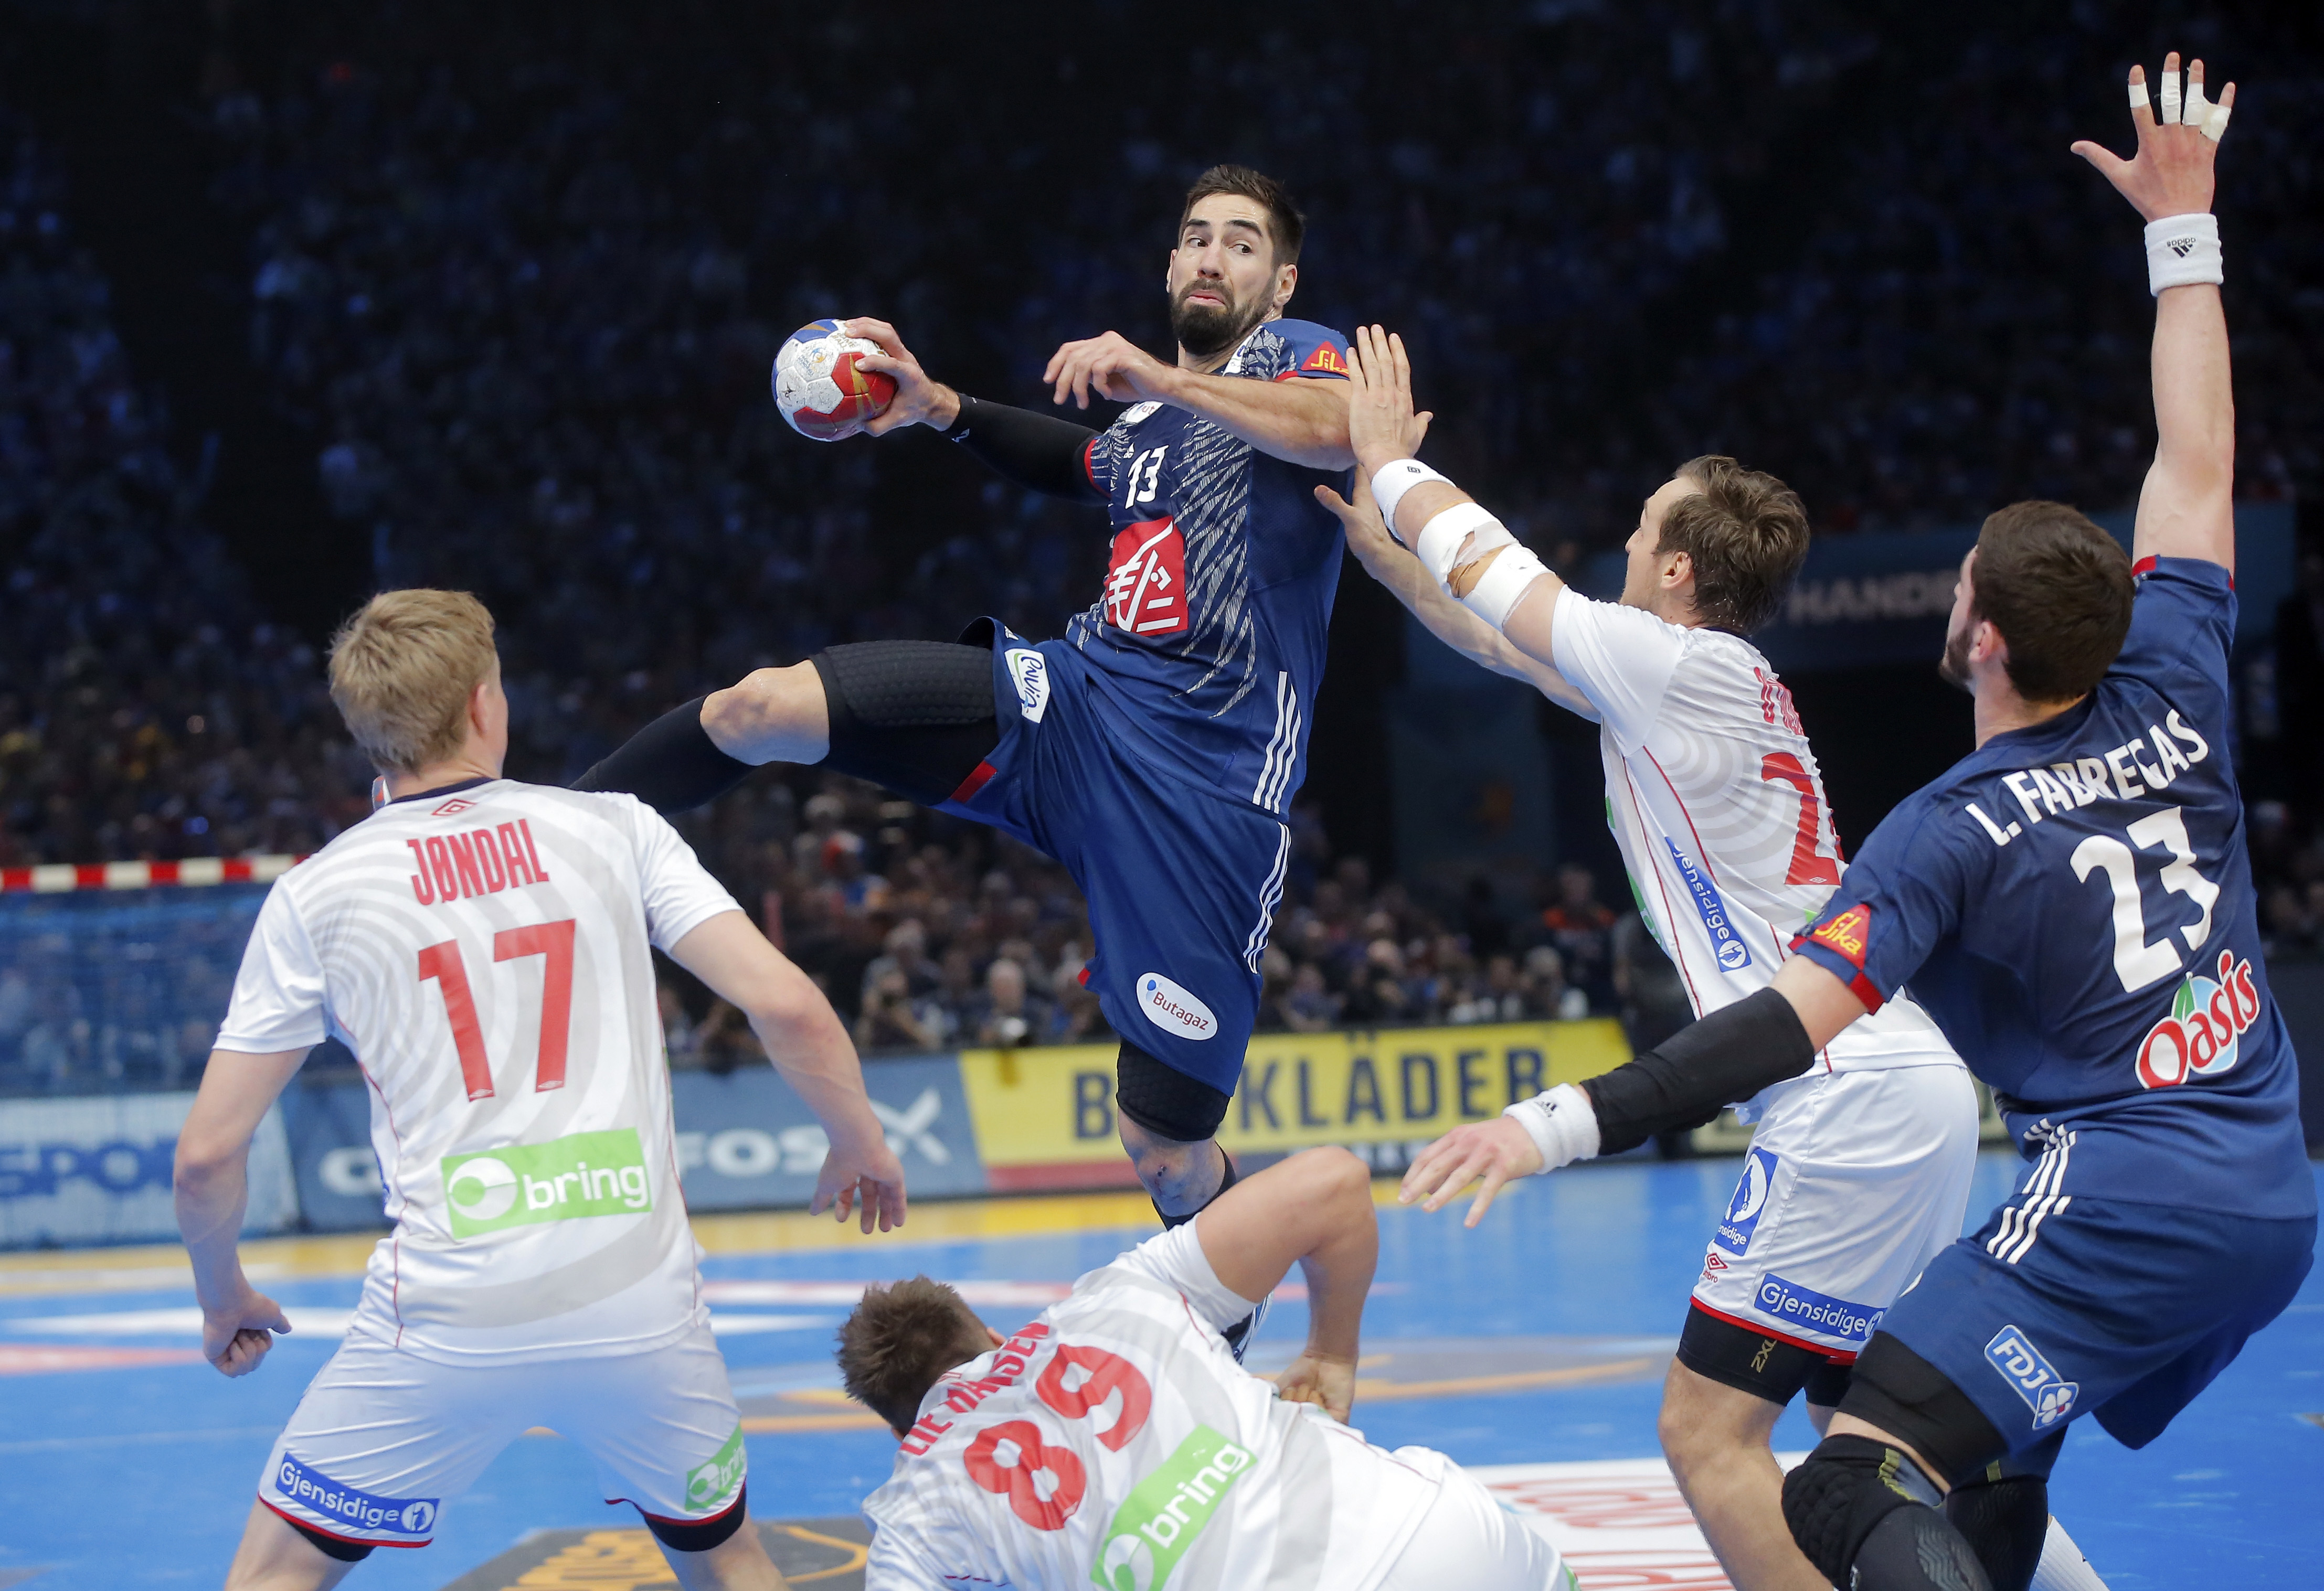 France's Nikola Karabatic, center, shoots the ball during the Handball World Championship final match between France and Norway at the Bercy arena in Paris, Sunday, Jan. 29, 2017. (AP Photo/Michel Euler)